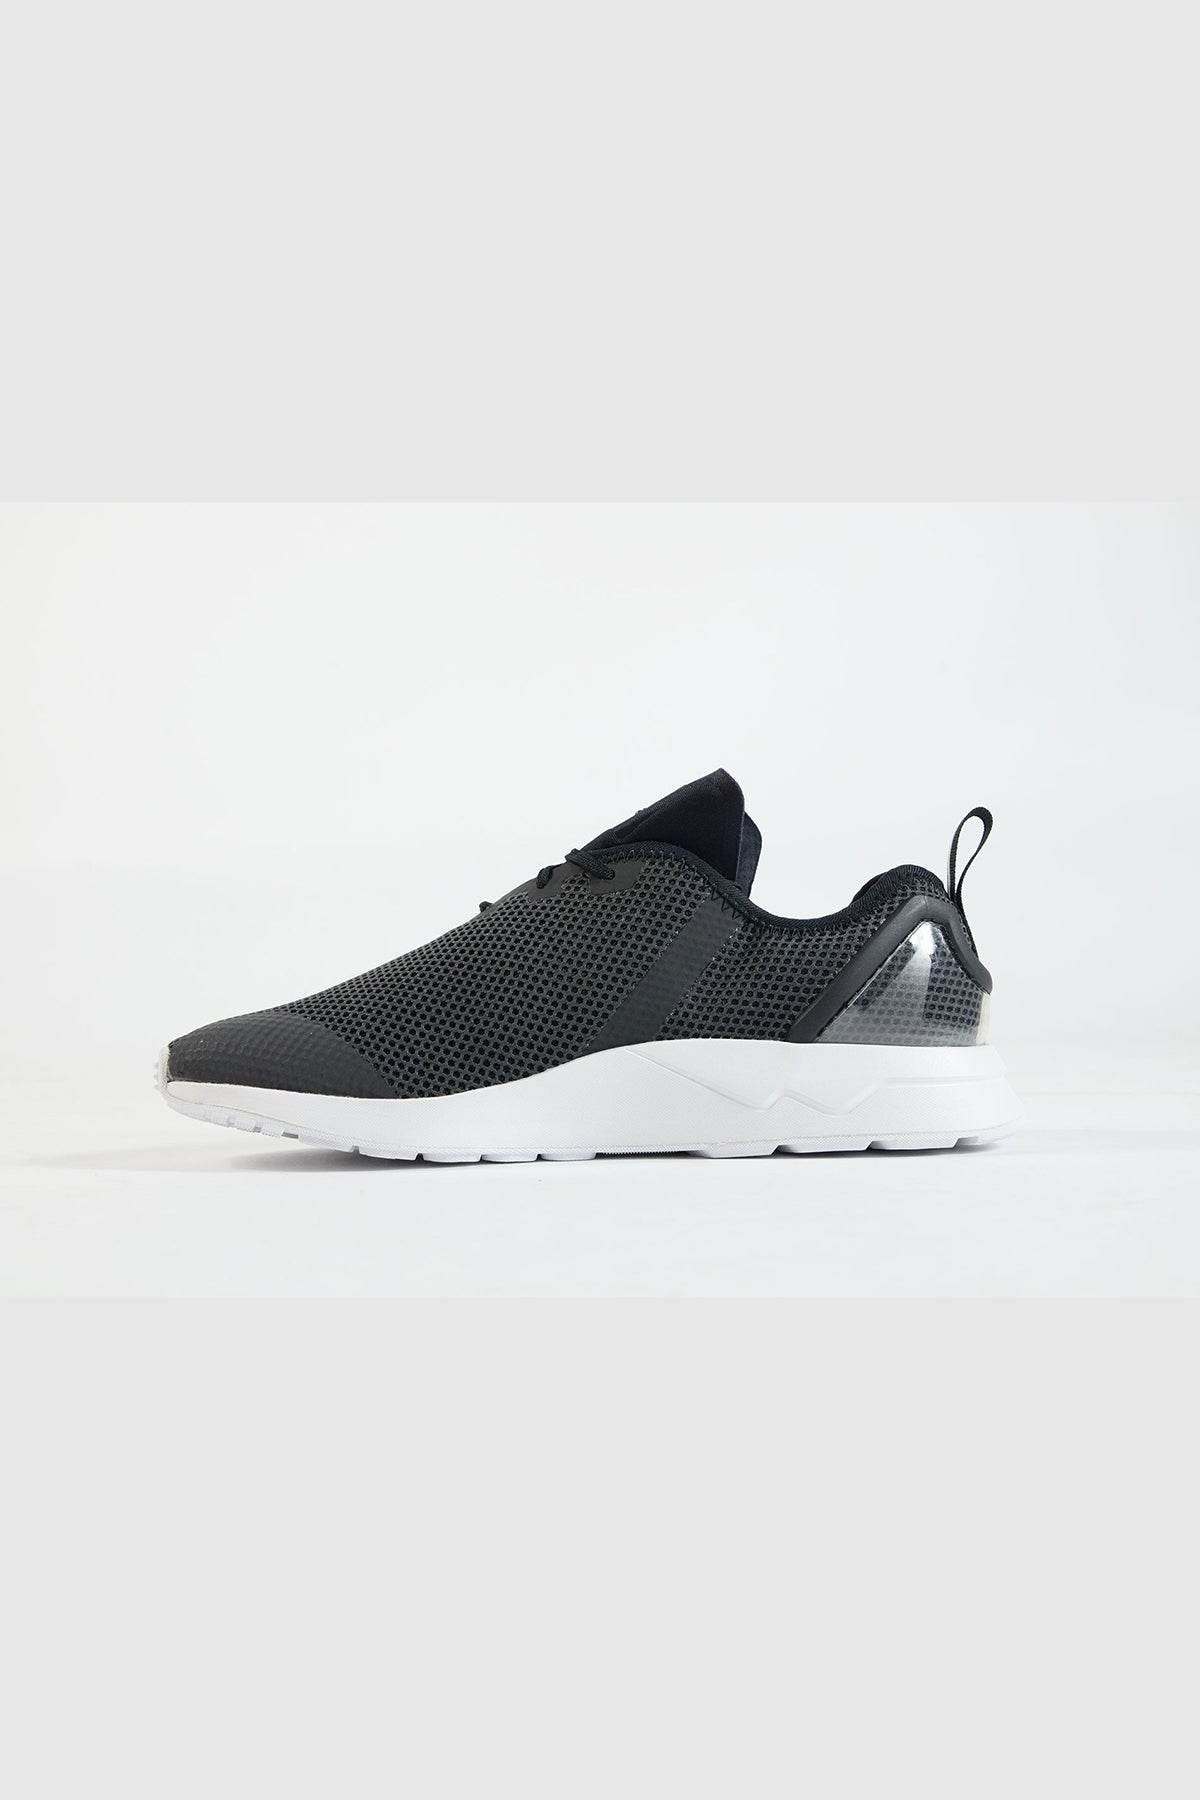 Adidas - Zx Flux Racer Asymmetrical (Black/ White)